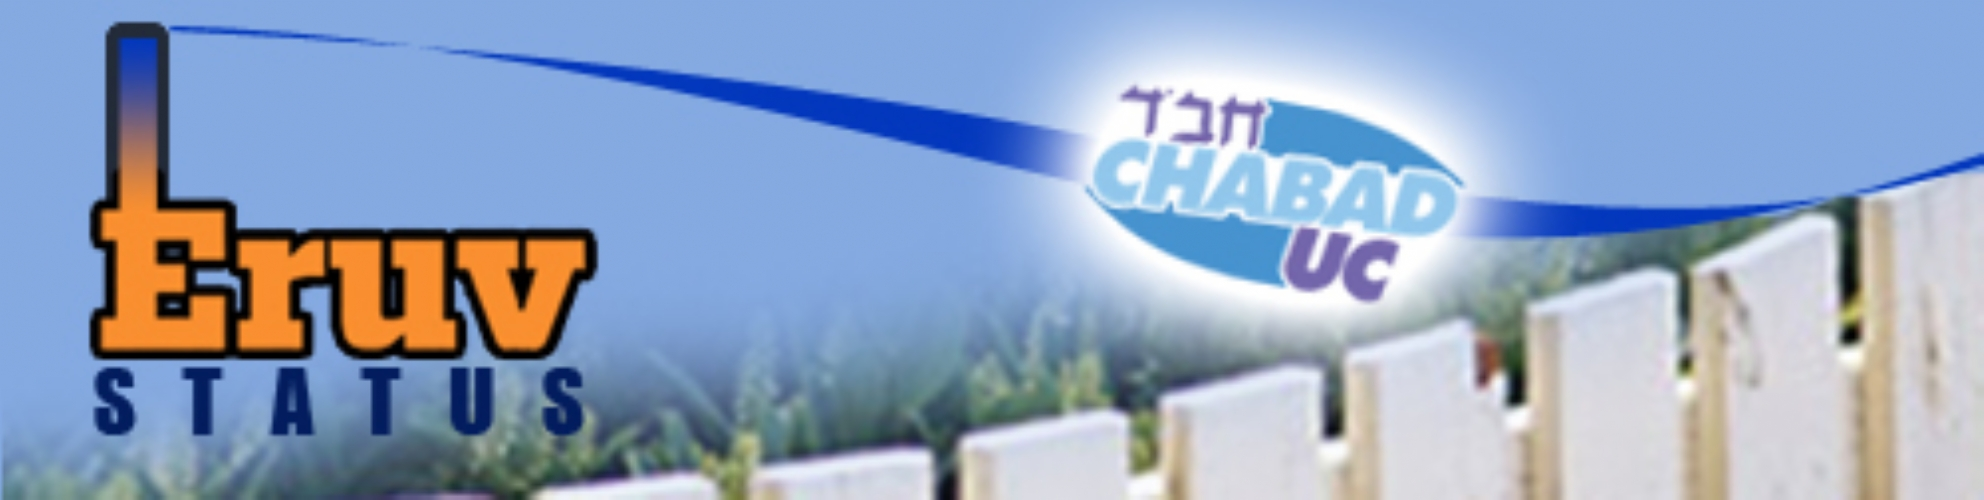 Chabad Center of UC Eruv Status  University City Community